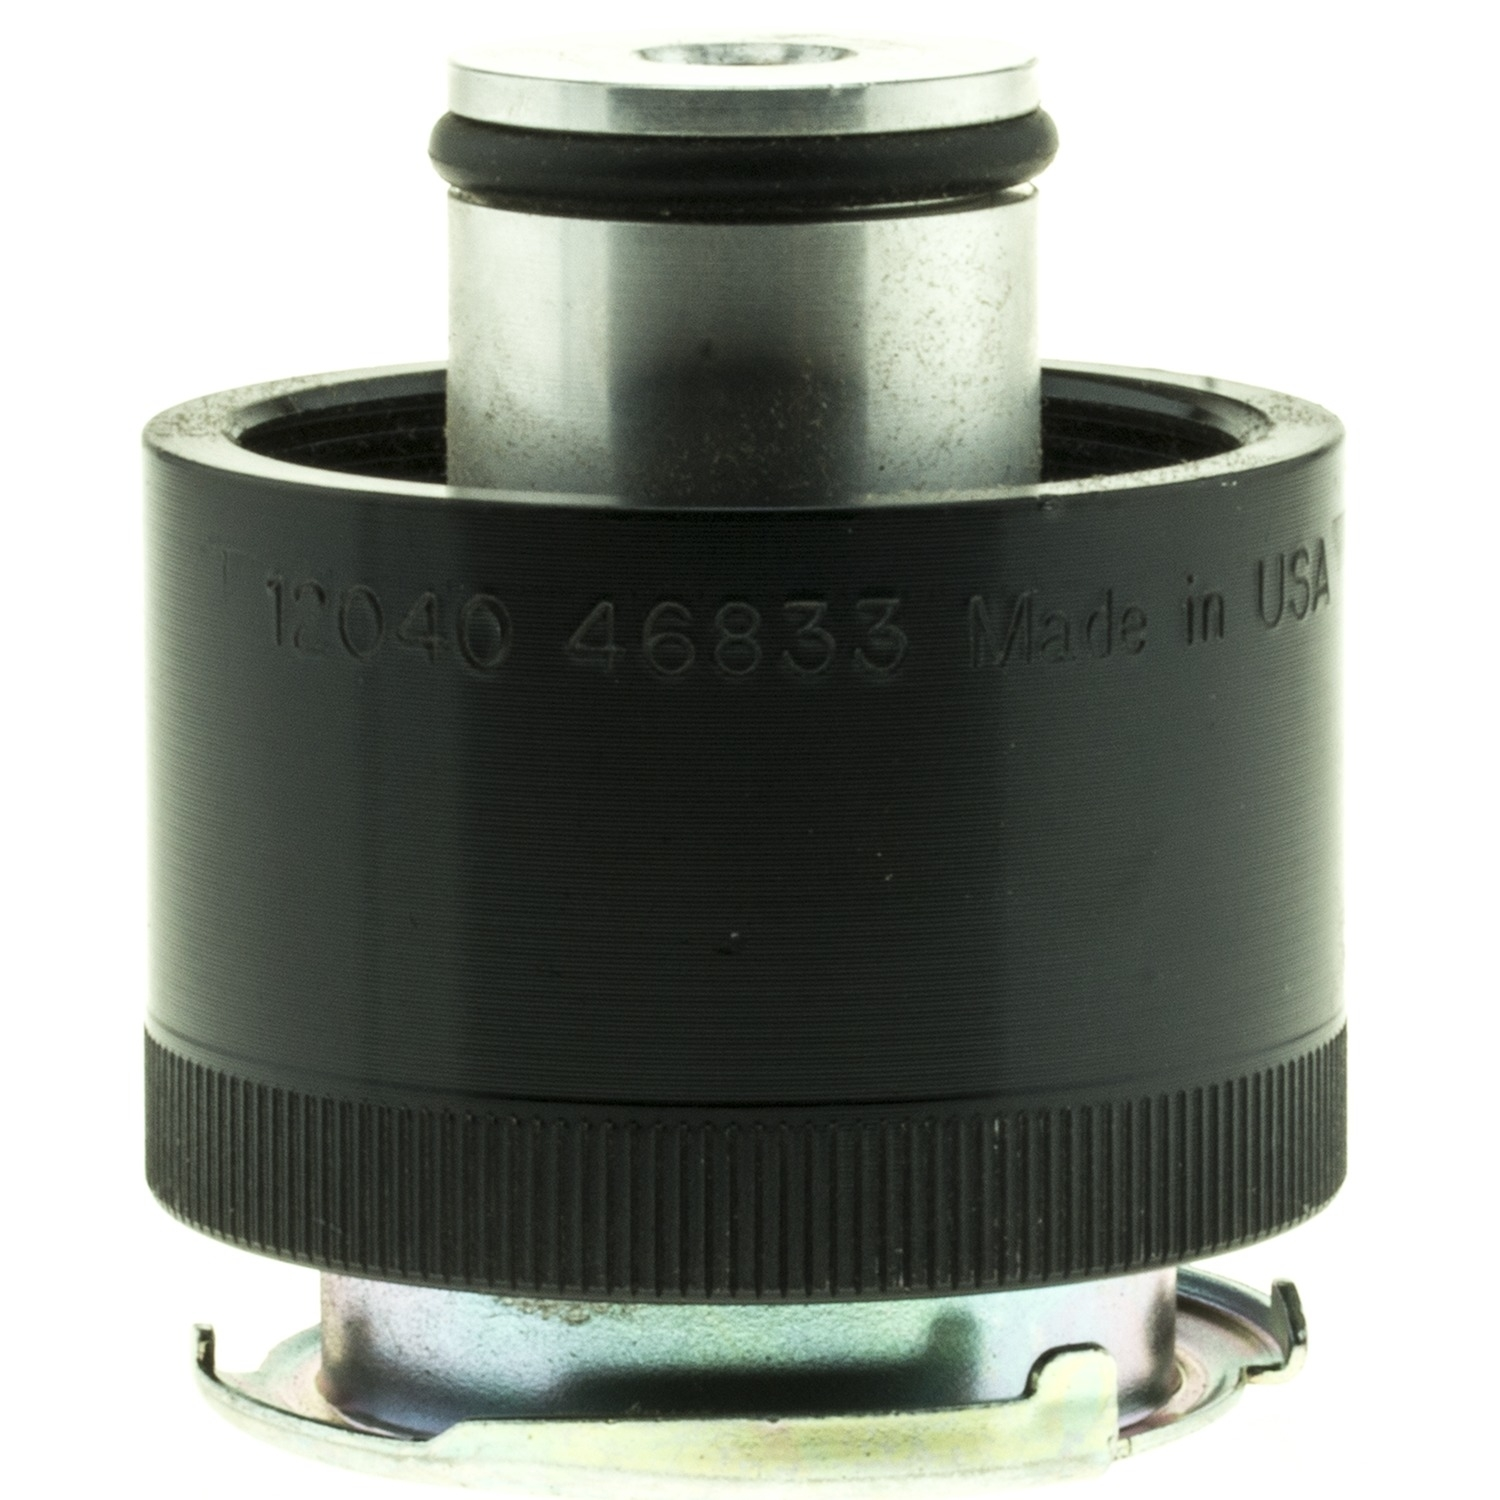 STANT - Radiator Cap/Cooling System Tester Adapter - STN 12040